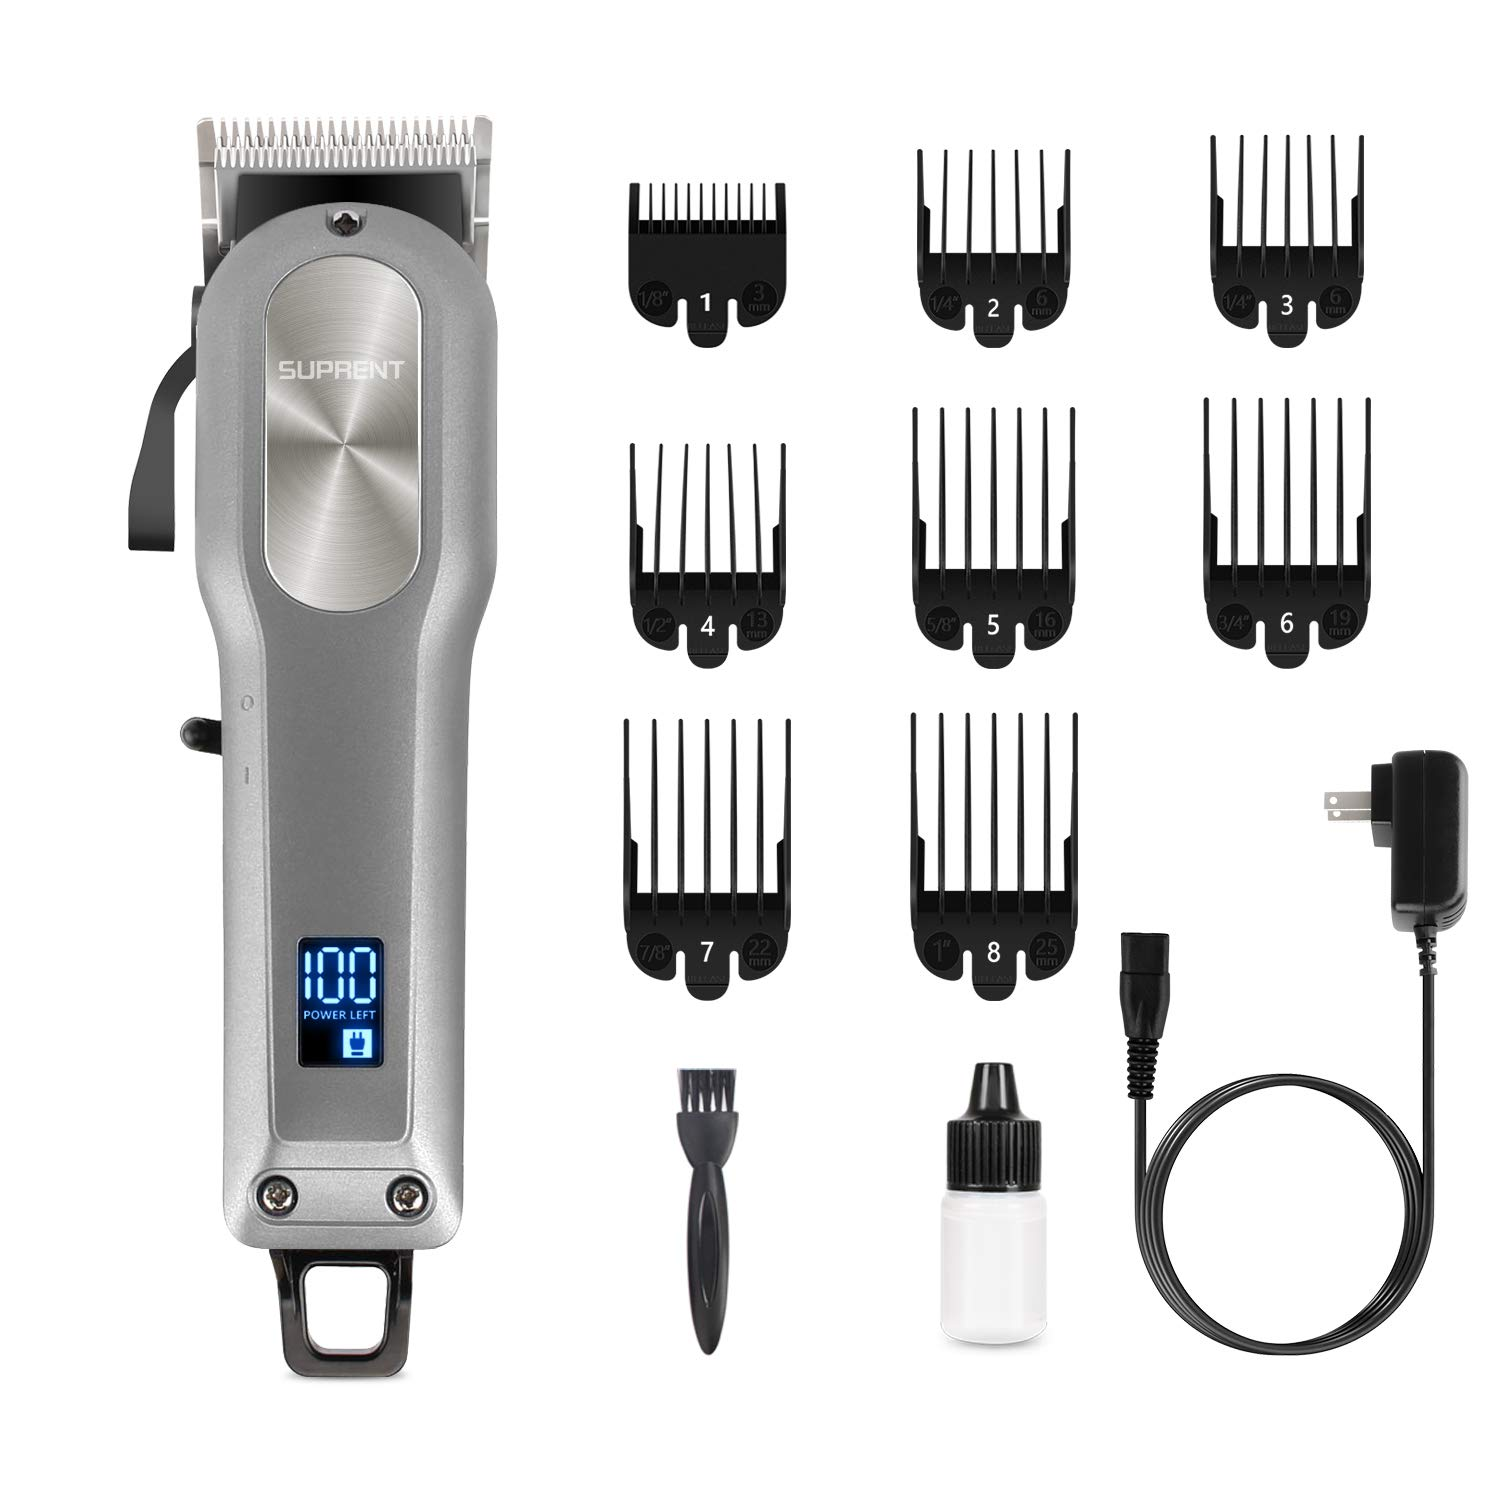 Cordless Hair Clippers for Men SUPRENT, Professional Hair Cutting Kit with 2000mAh Lithium Ion, Stainless steel Blade, Hair Trimmer with Lock-In Length (Silver): Beauty